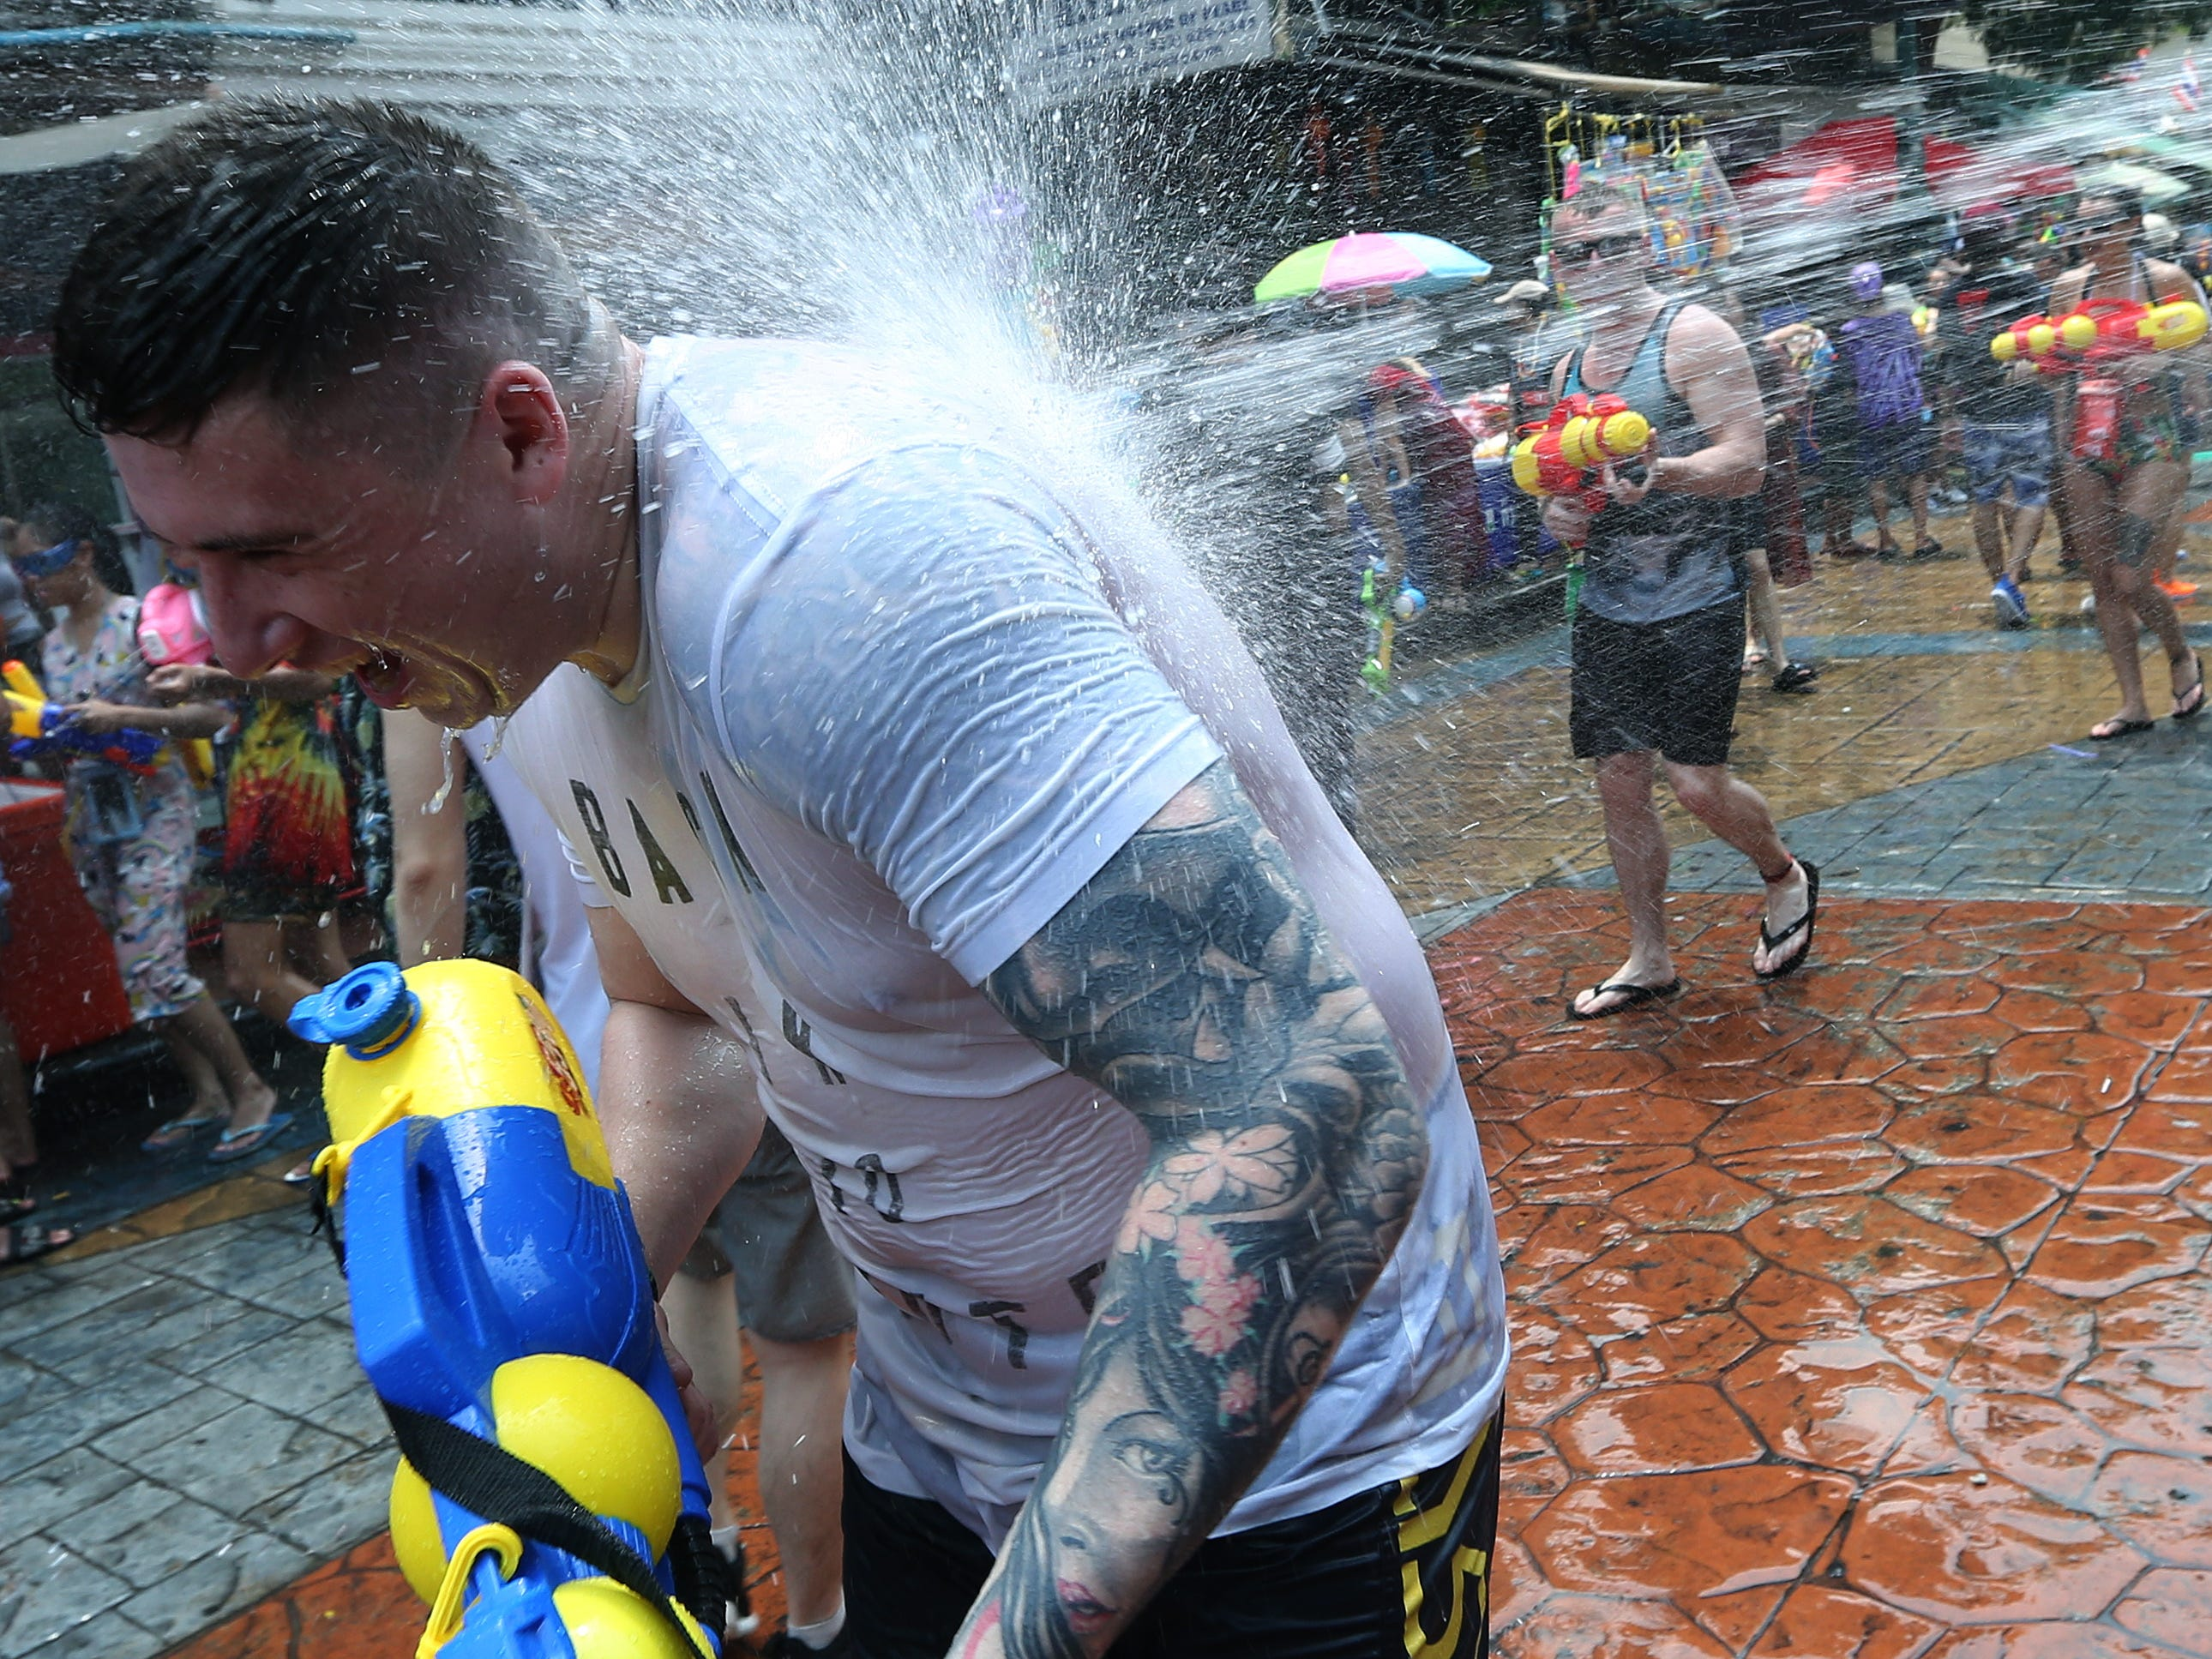 A reveler is doused in a water gun battle as they join the Songkran Festival, the celebrations on Thai traditional New Year in Bangkok, Thailand on April 13, 2019.